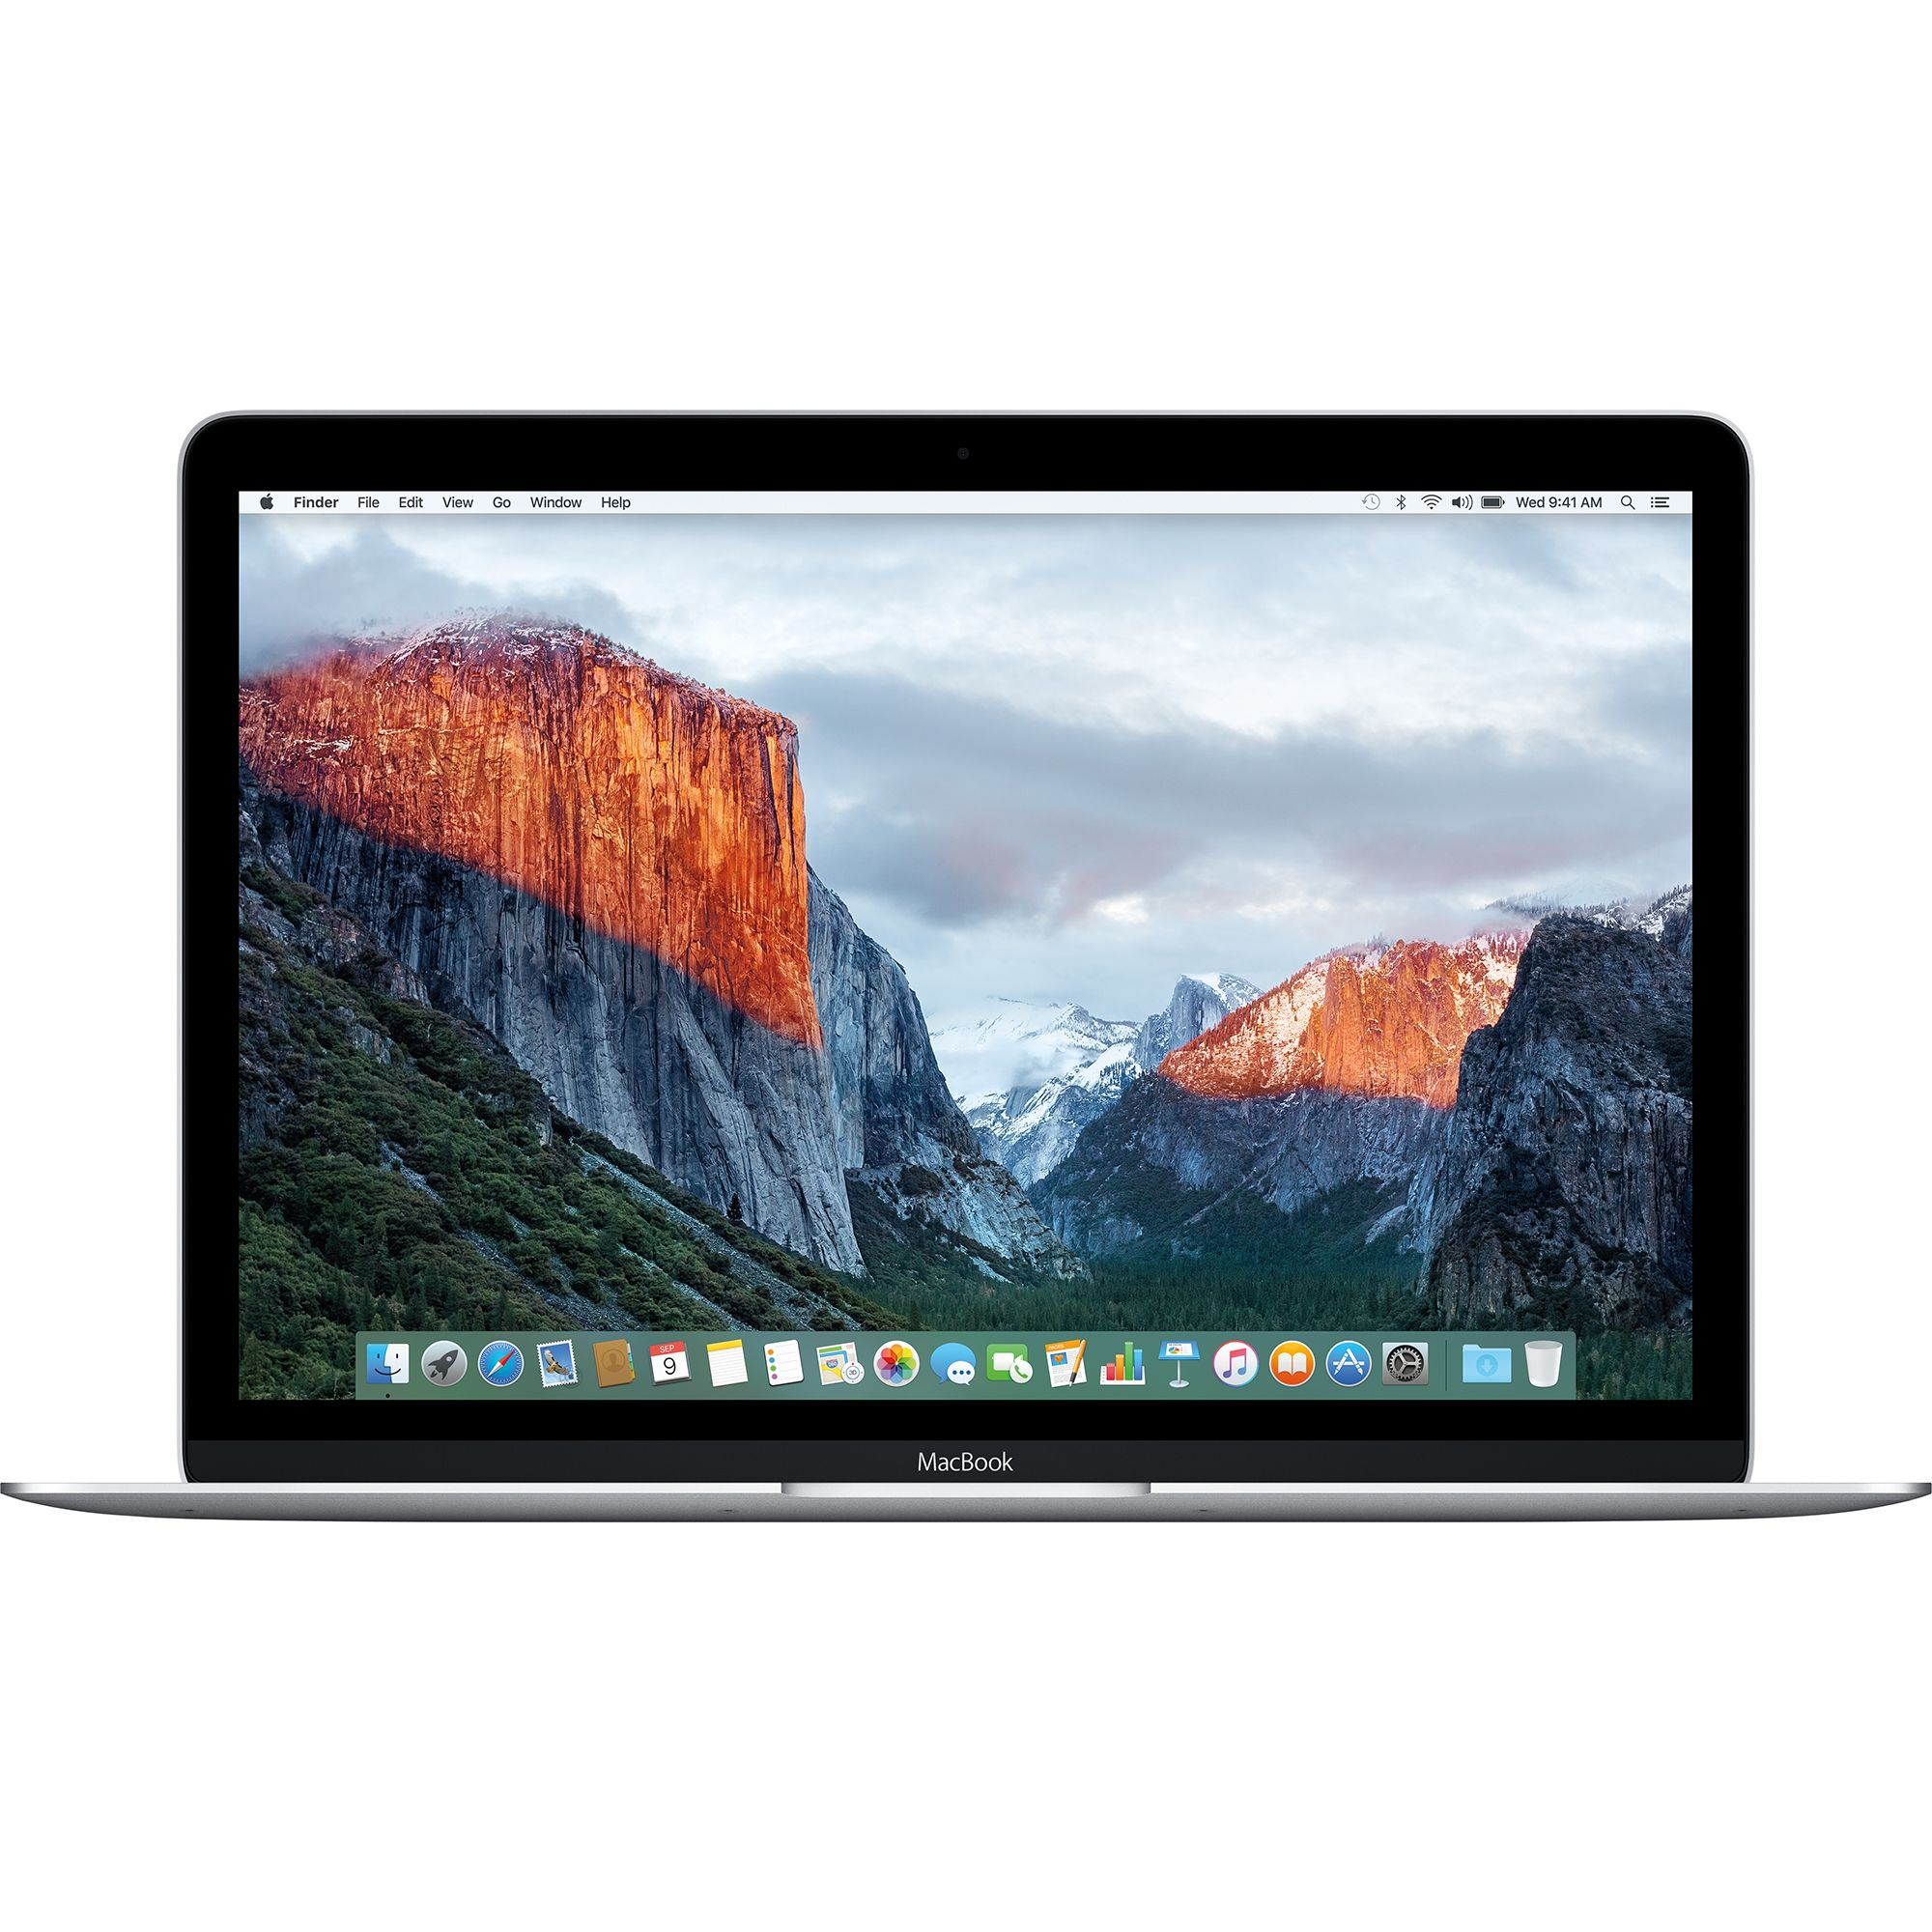 Notebook Apple MacBook Retina 12 Intel Core m3 1.2GHz RAM 8GB SSD 256GB Tastatura RO Silver